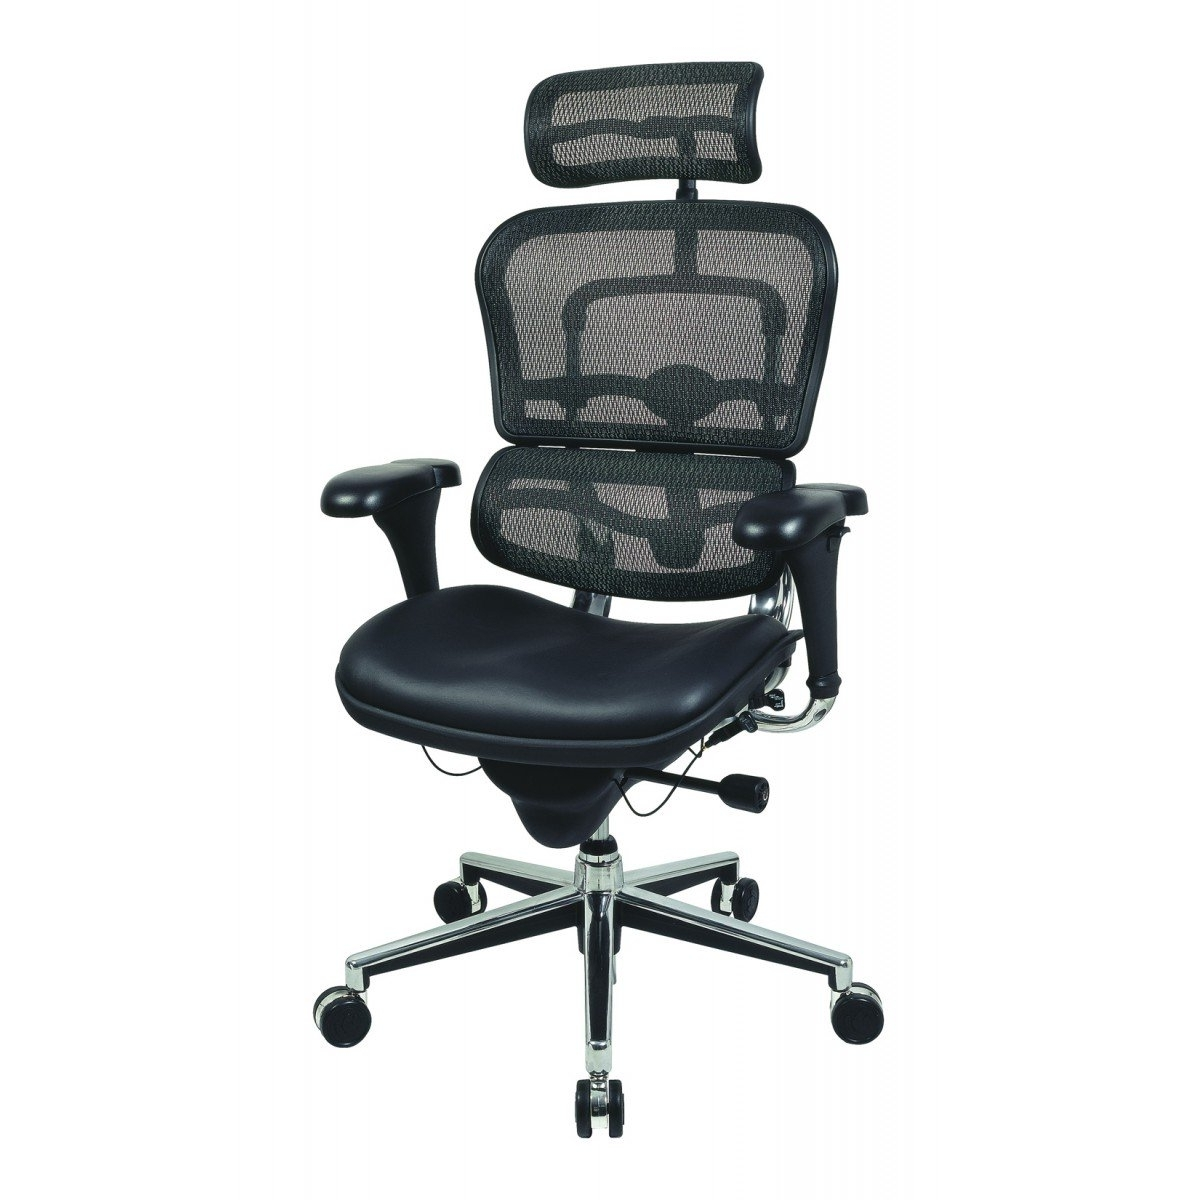 Widely Used Executive Office Chairs With Headrest Regarding Eurotech Ergohuman – Mesh Office Chair With Leather Seat And (View 11 of 20)